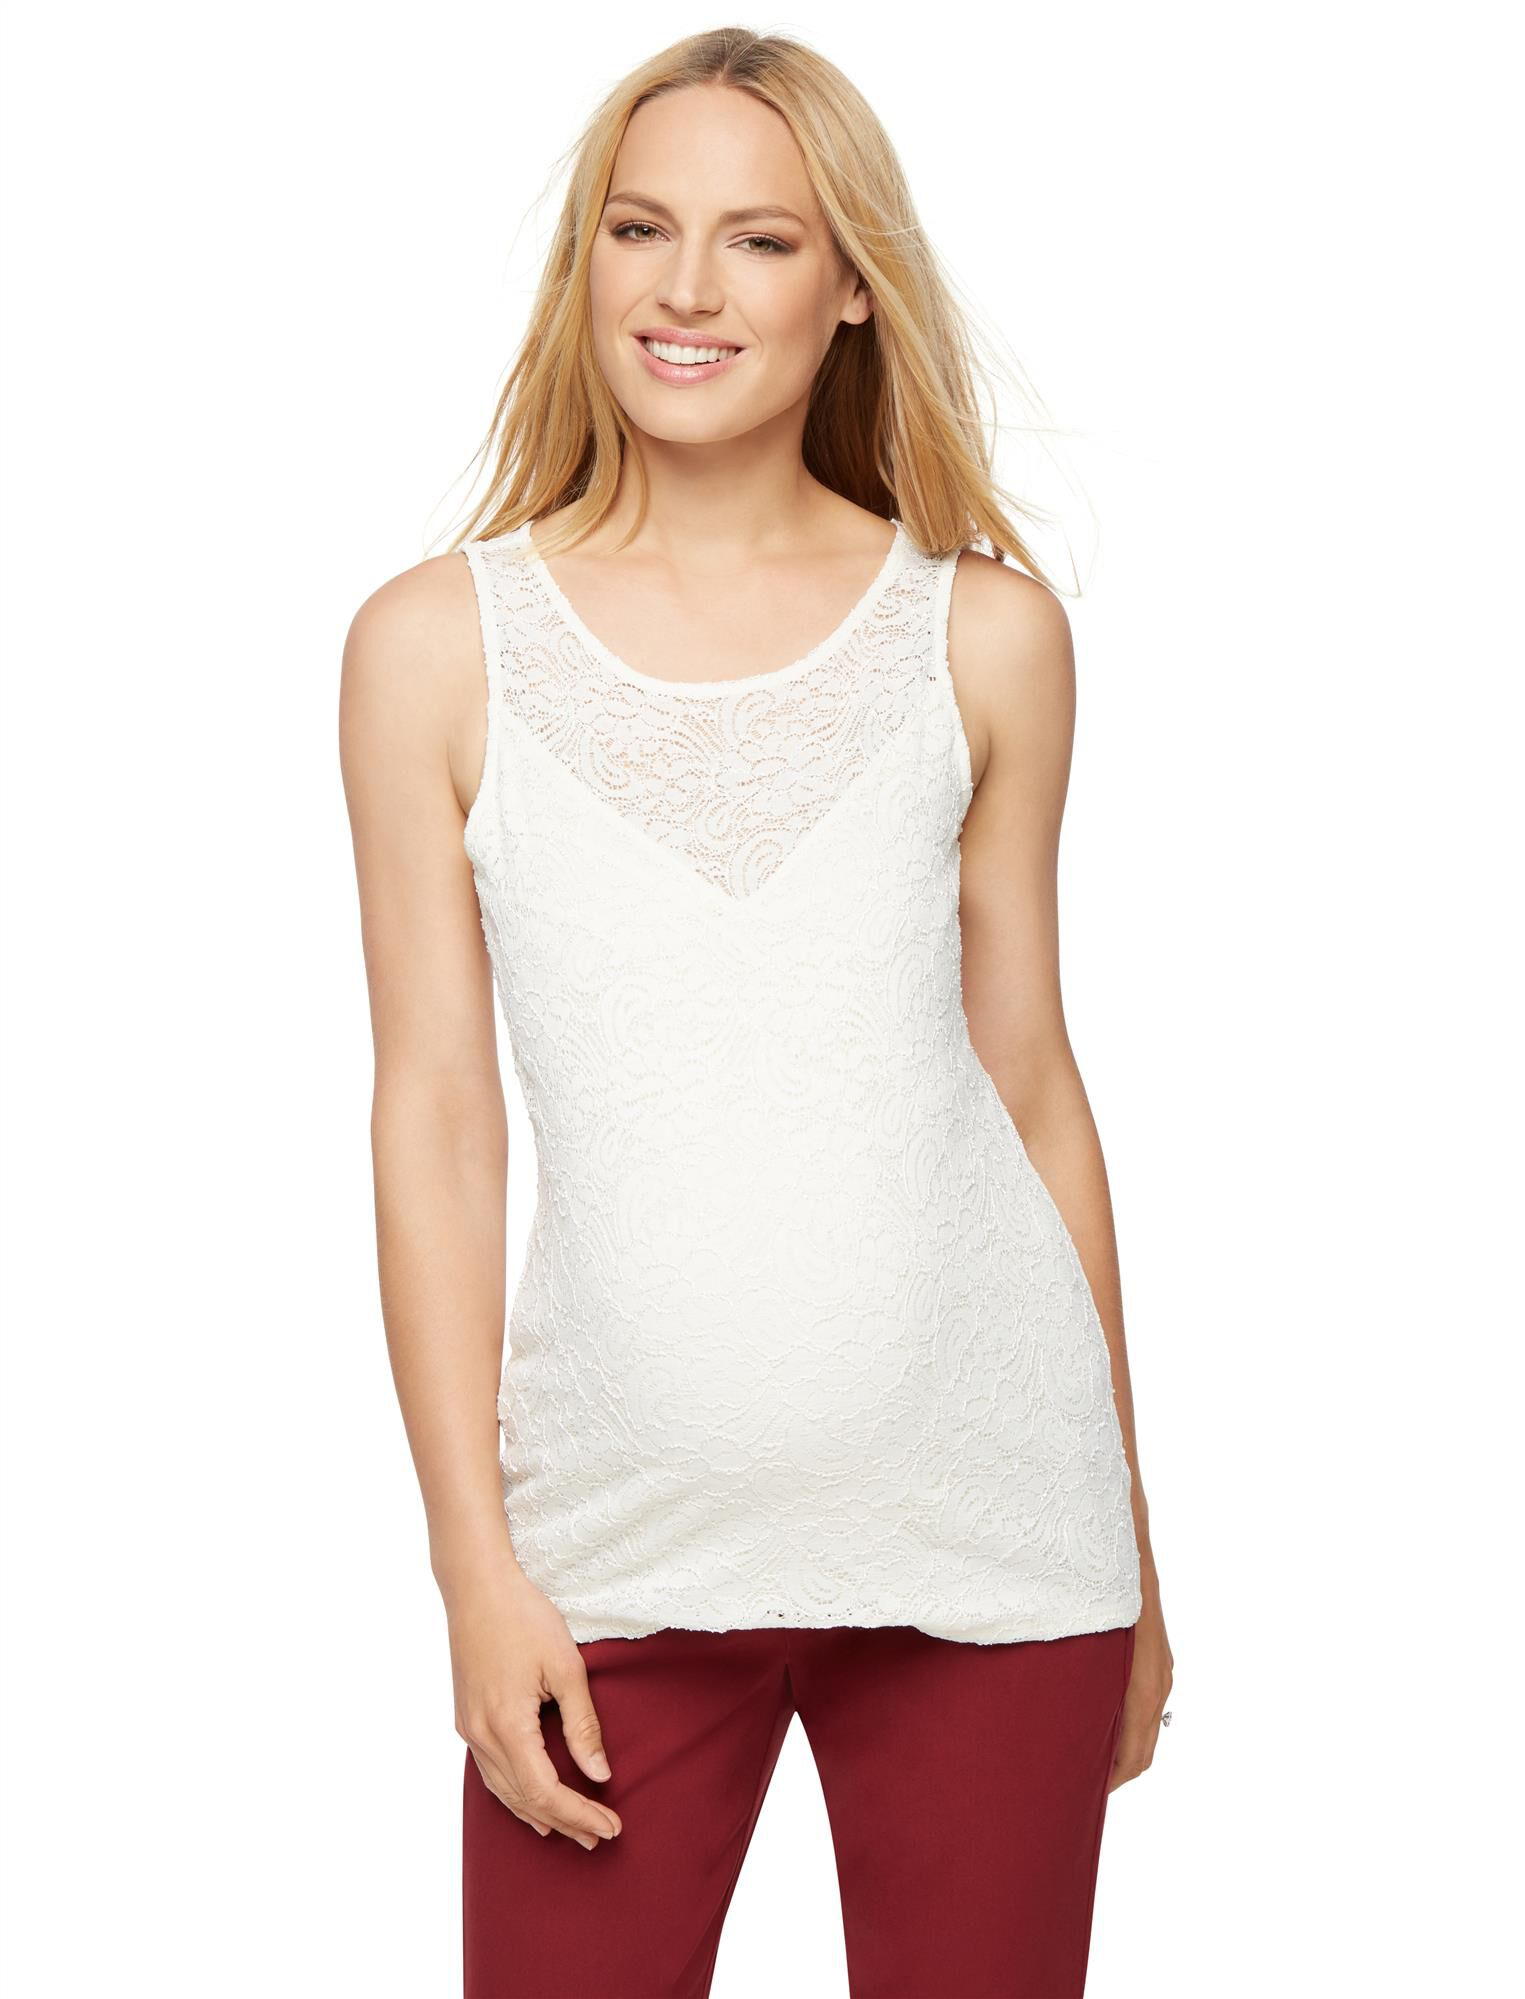 Lace Maternity Tank Top